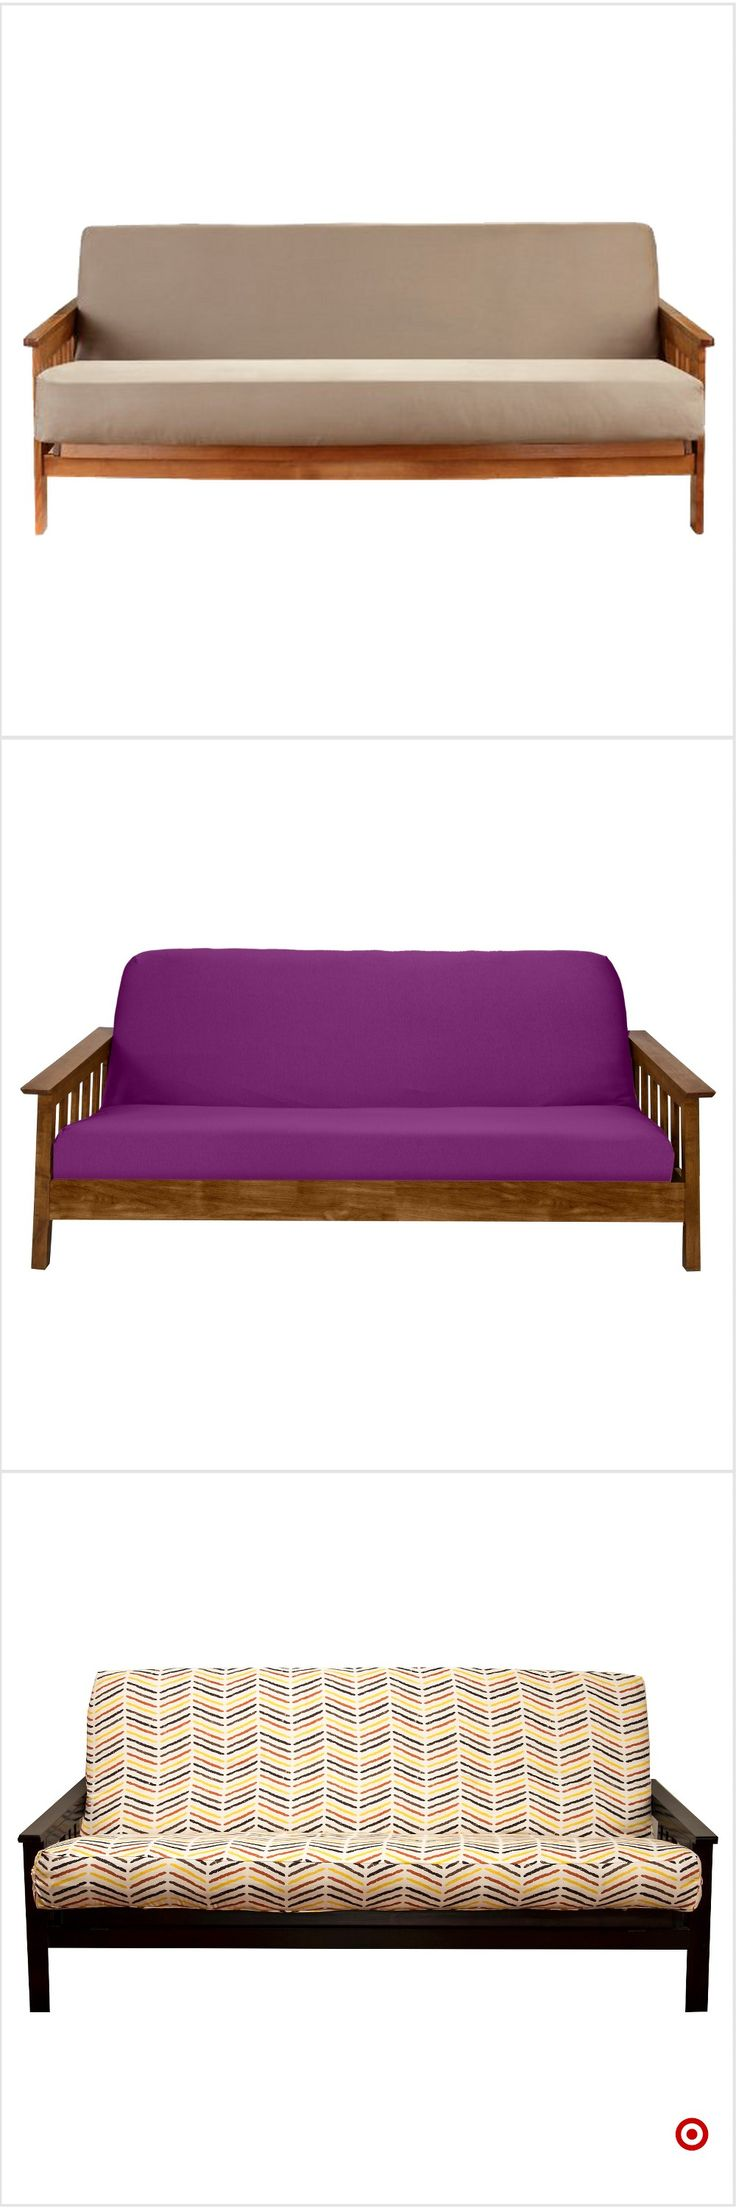 Target For Futon Cover You Will Love At Great Low Prices Free Shipping On